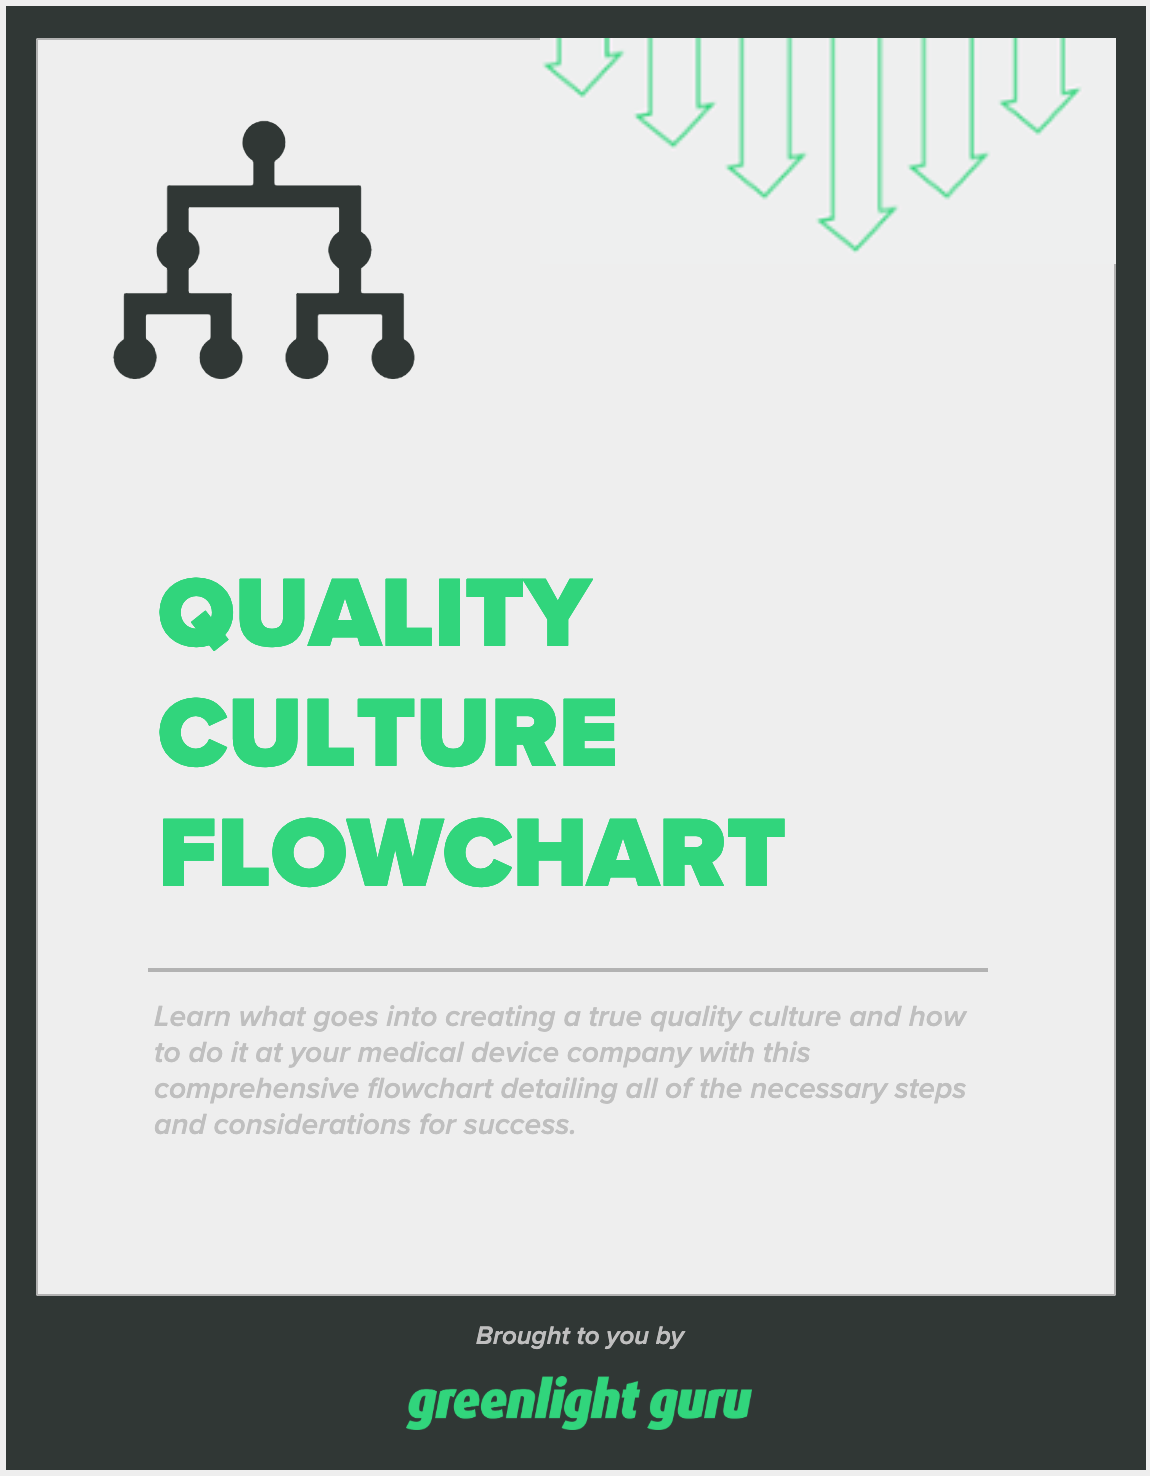 Quality culture flowchart